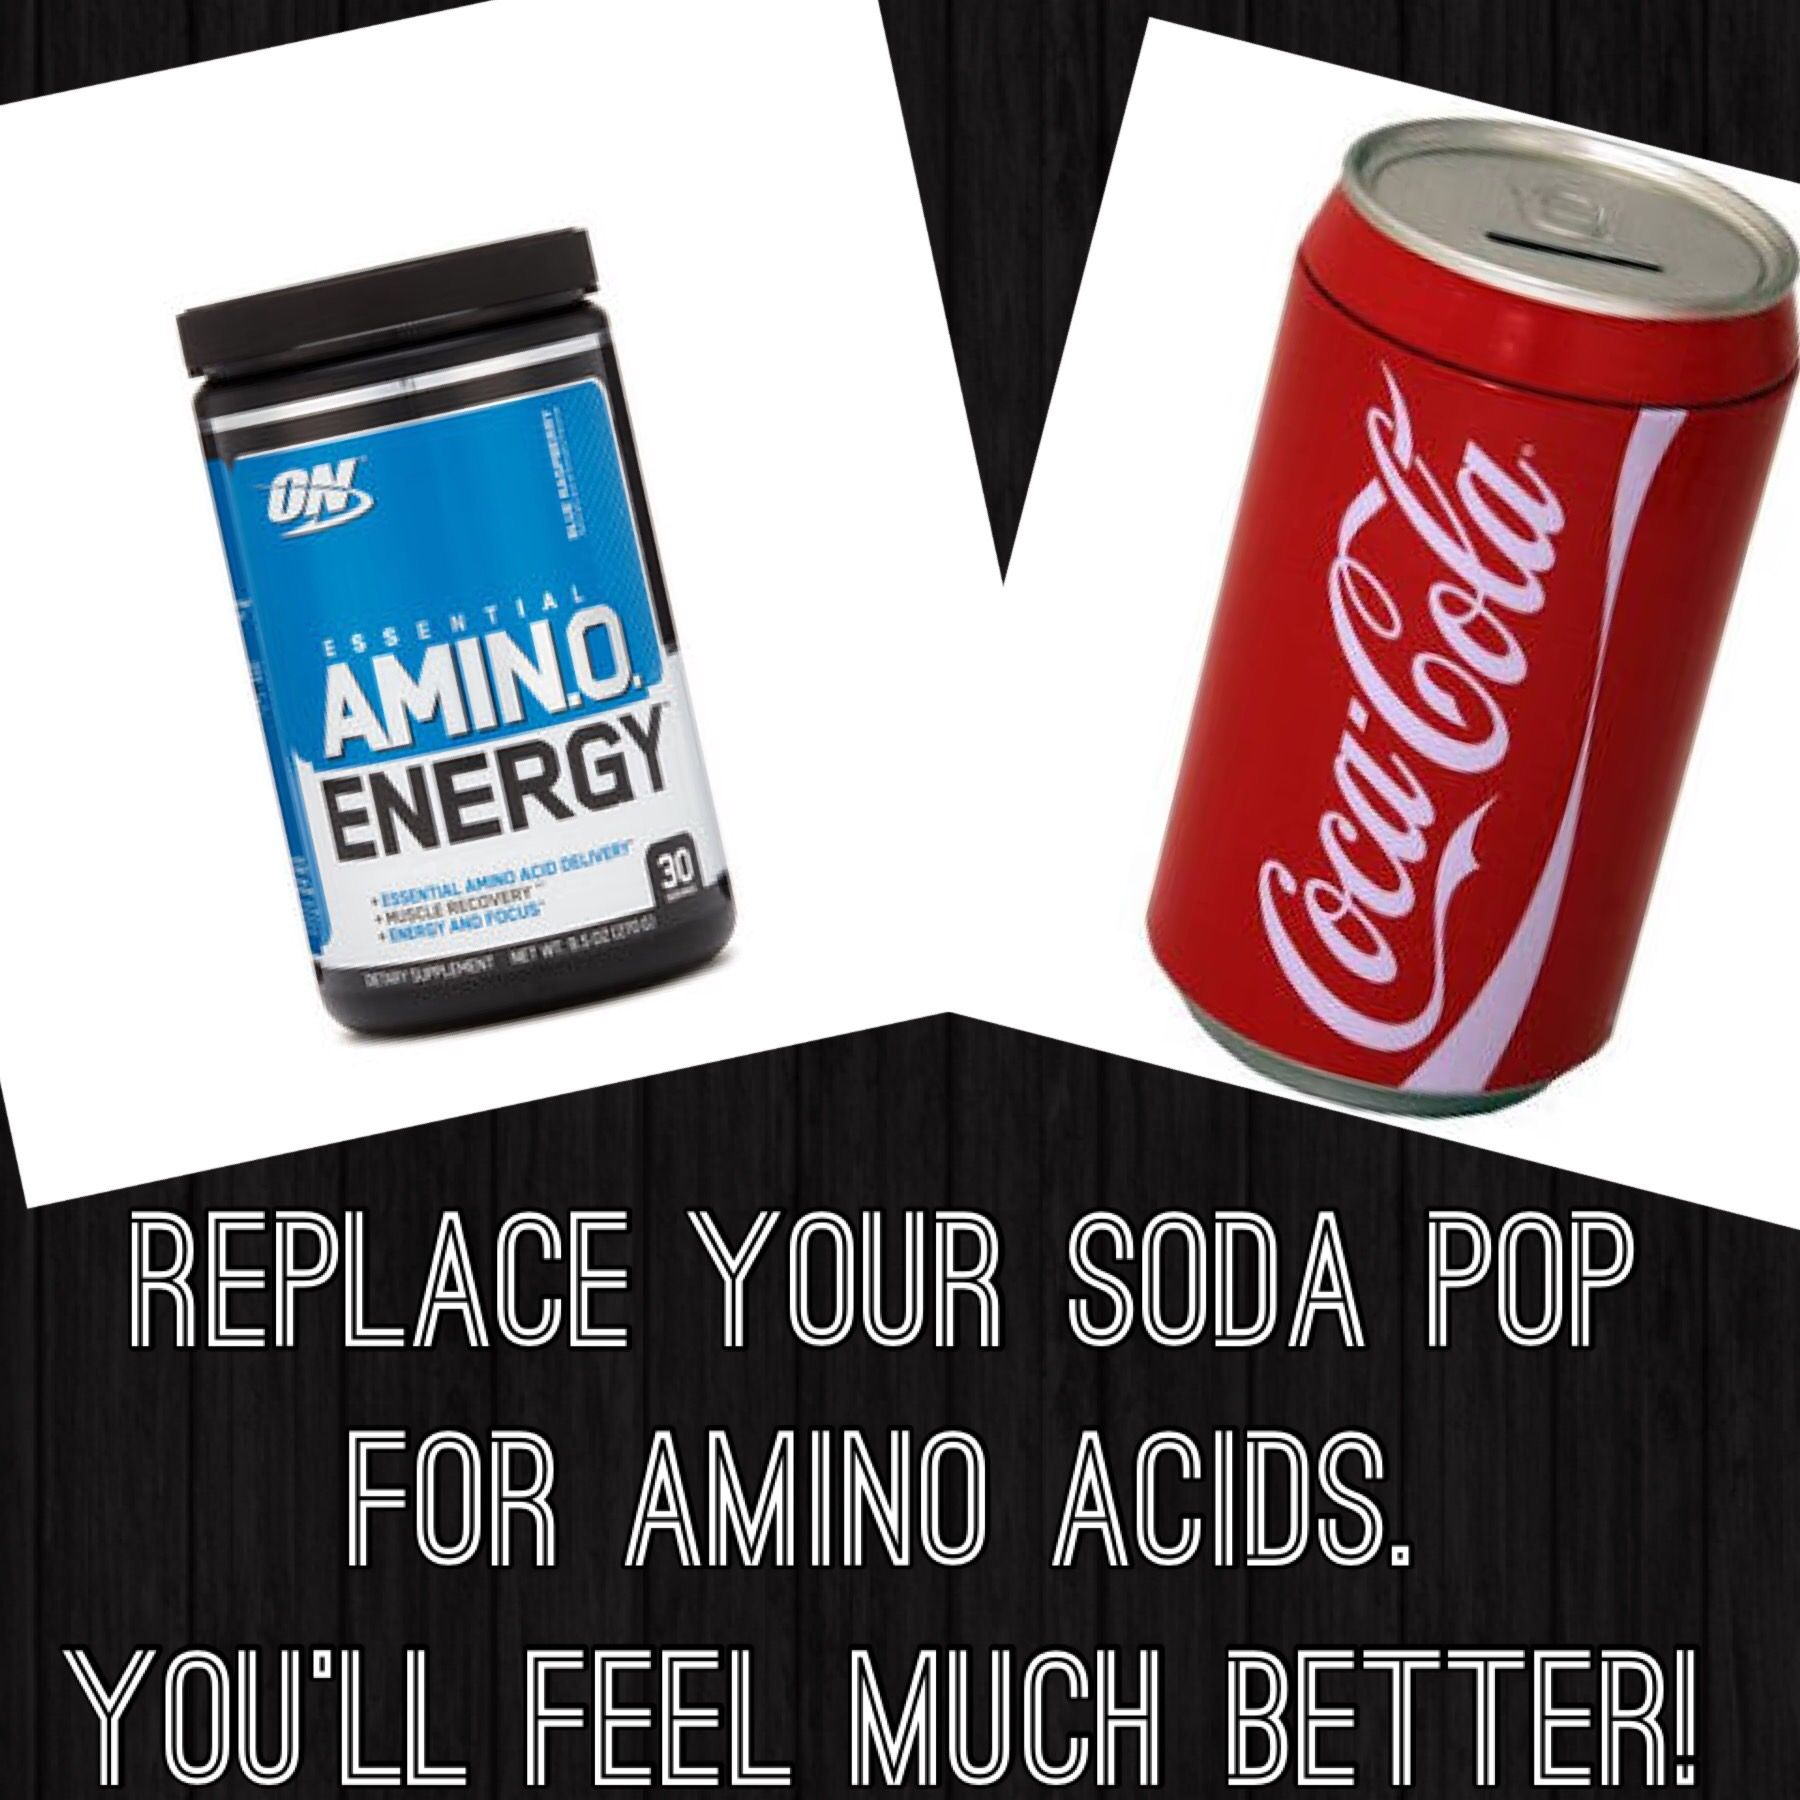 Quit Drinking Pop By Replacing It With Amino Acids! Your